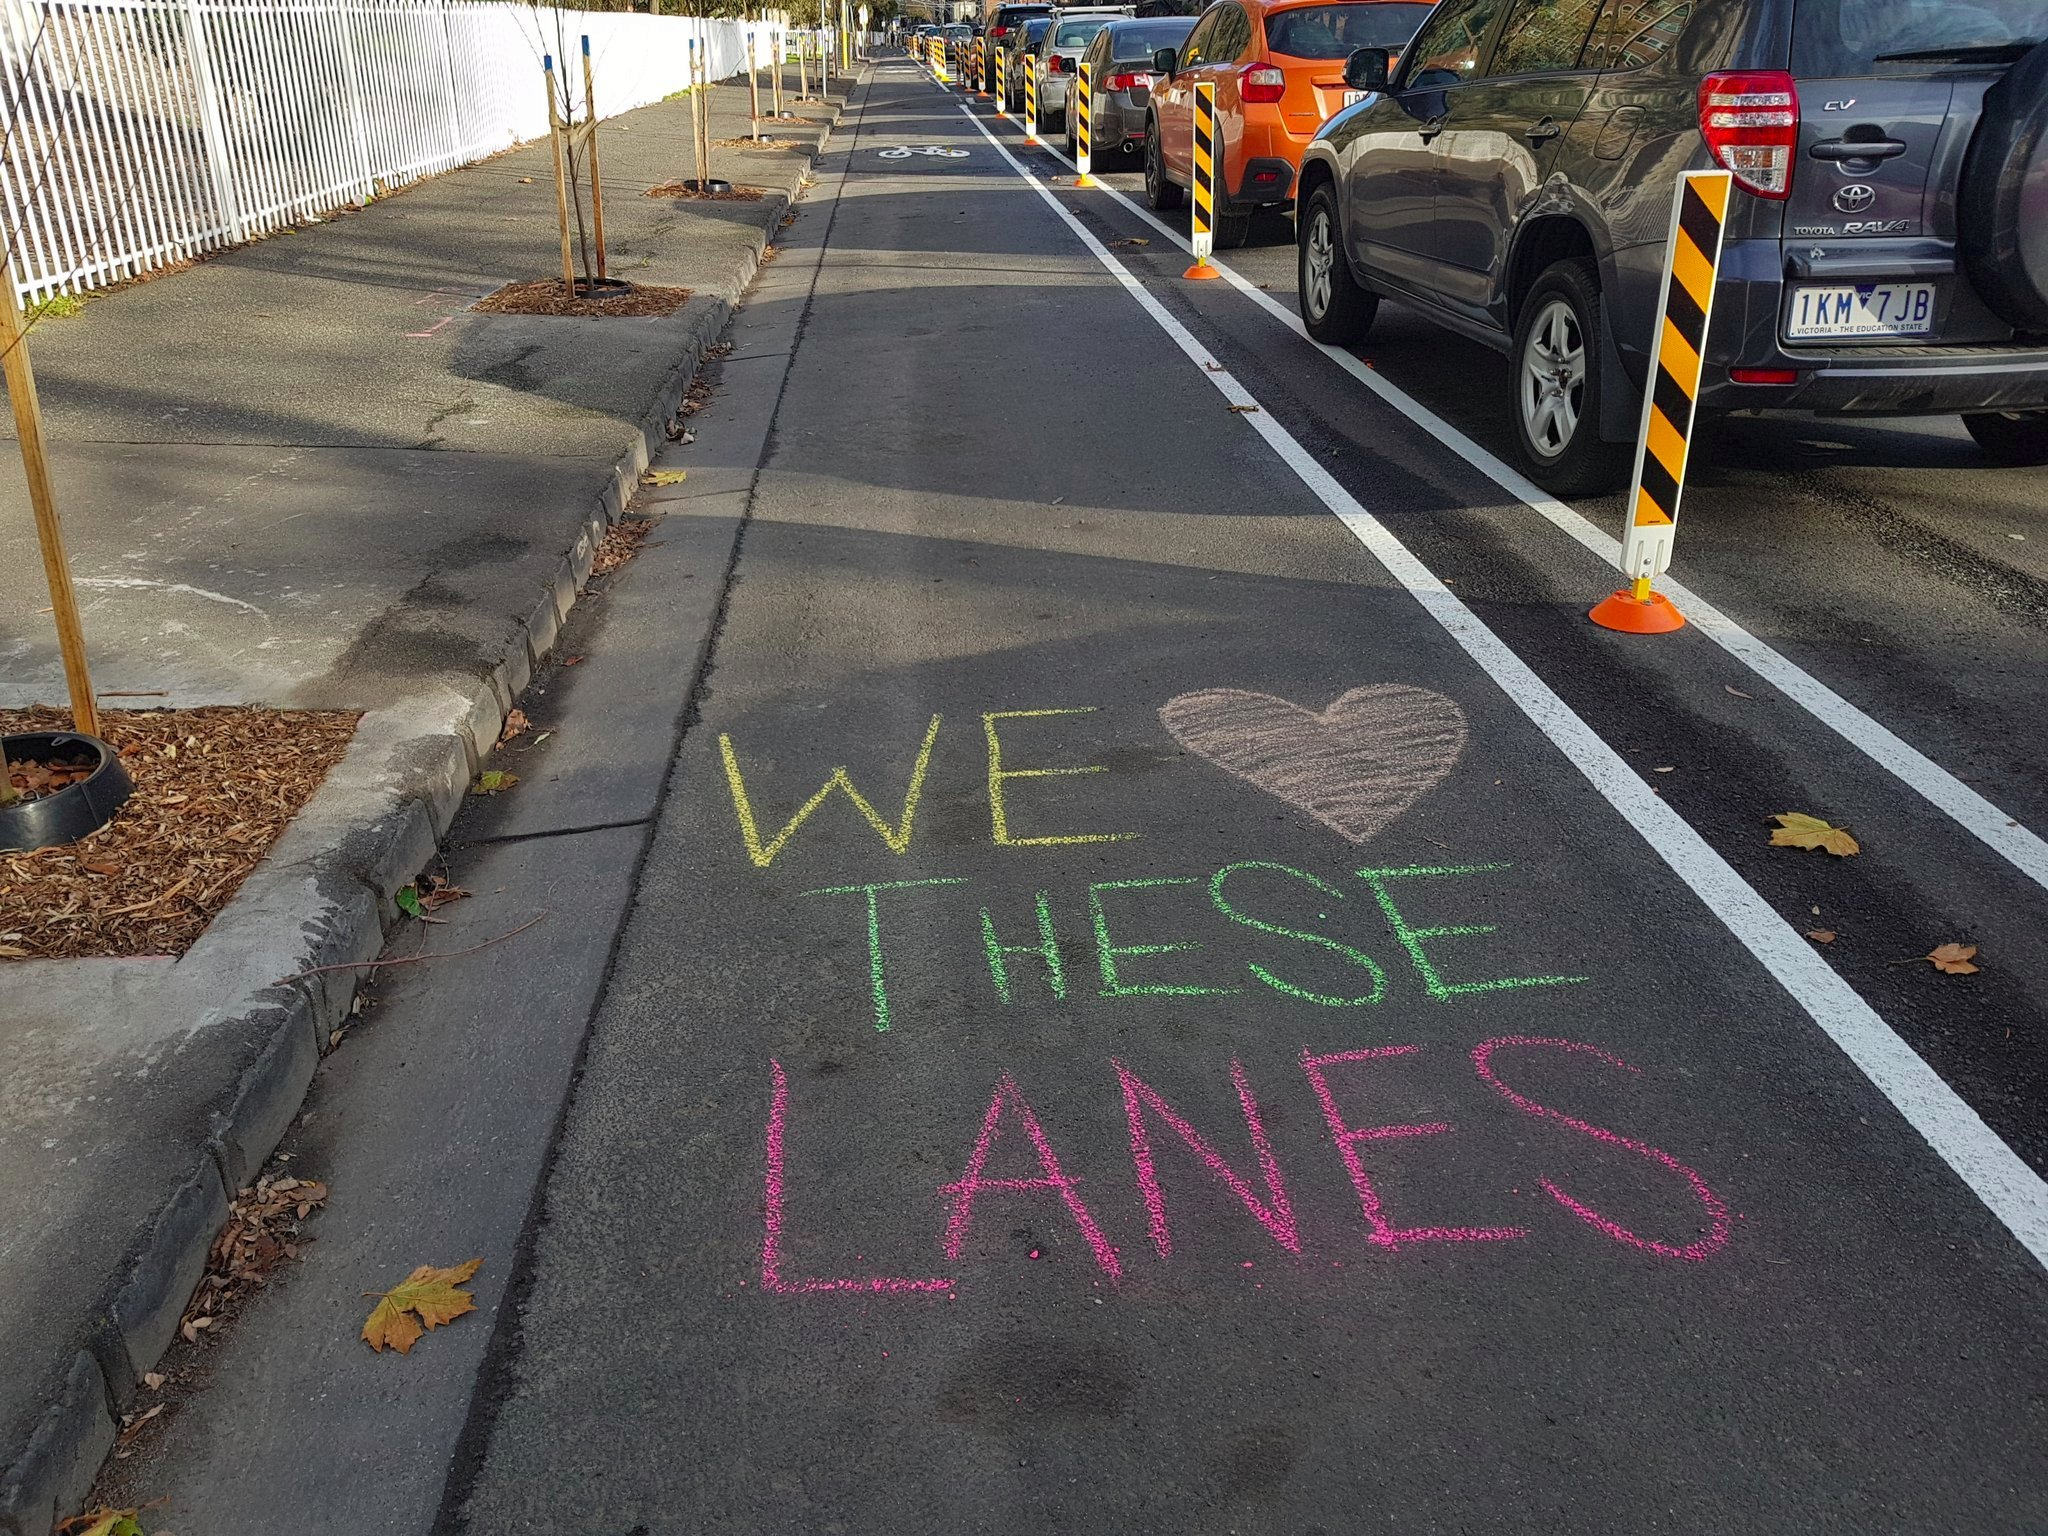 Yay for Elizabeth Street protected bike lanes trial!